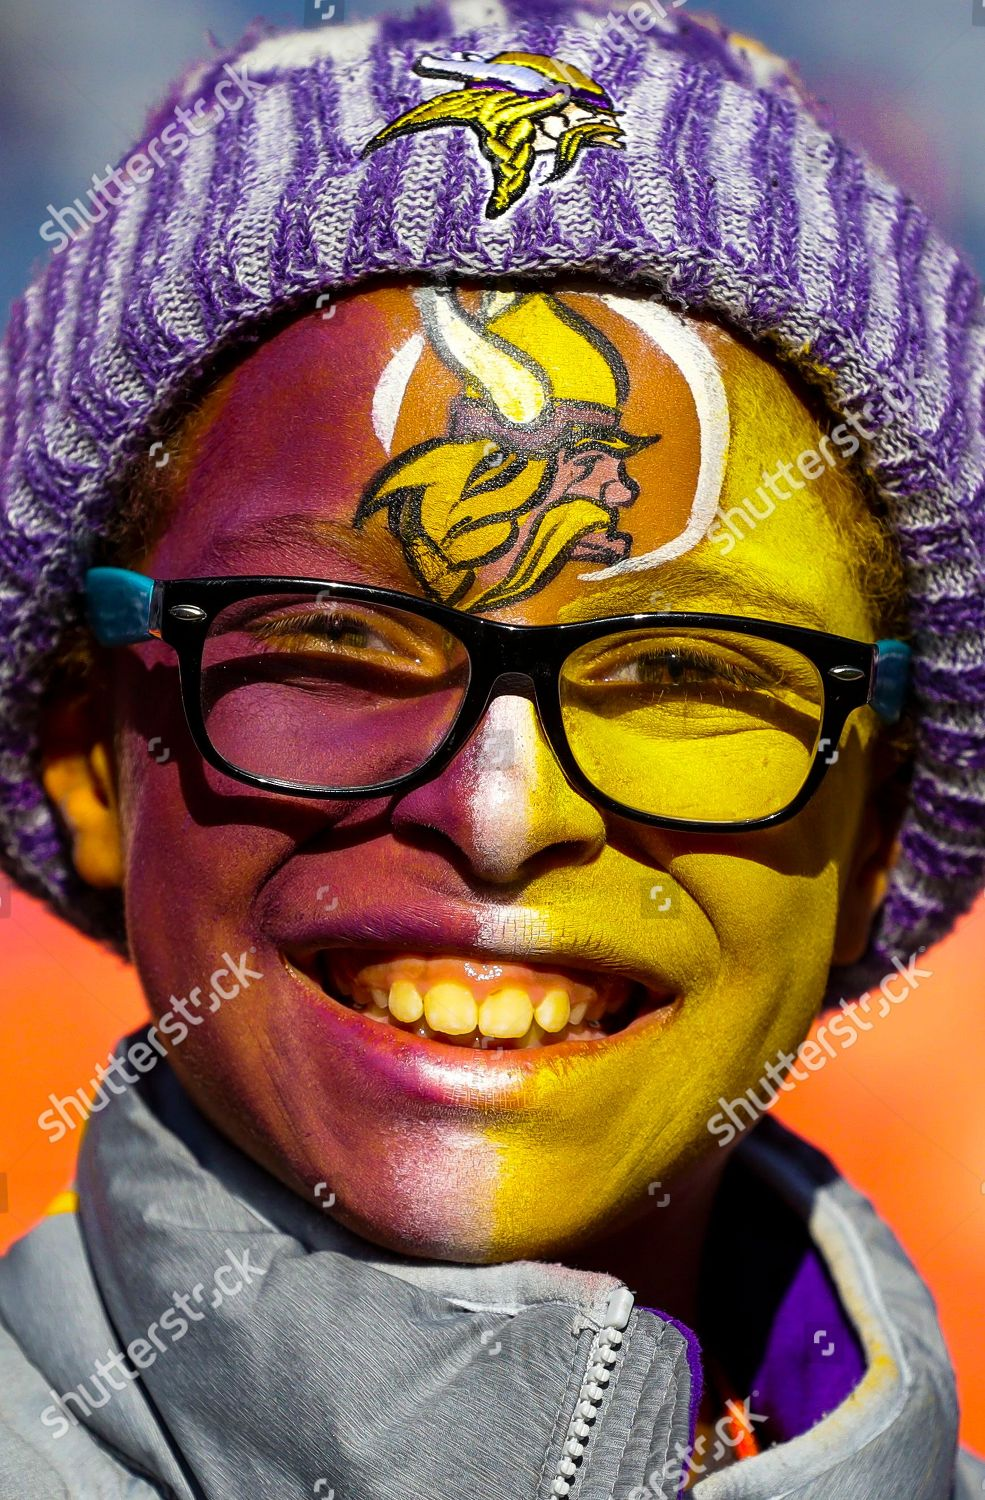 Minnesota Vikings Fan Shows Support Painted Face Editorial Stock